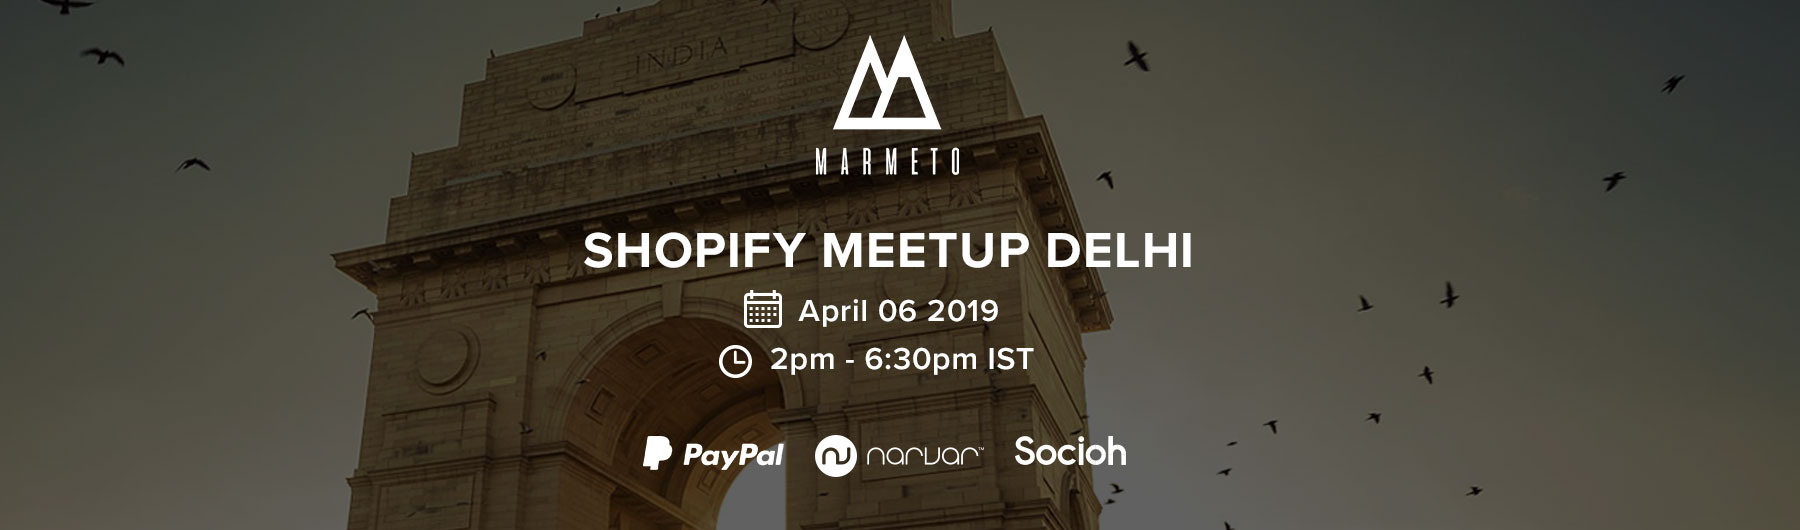 Shopify Meetup New Delhi